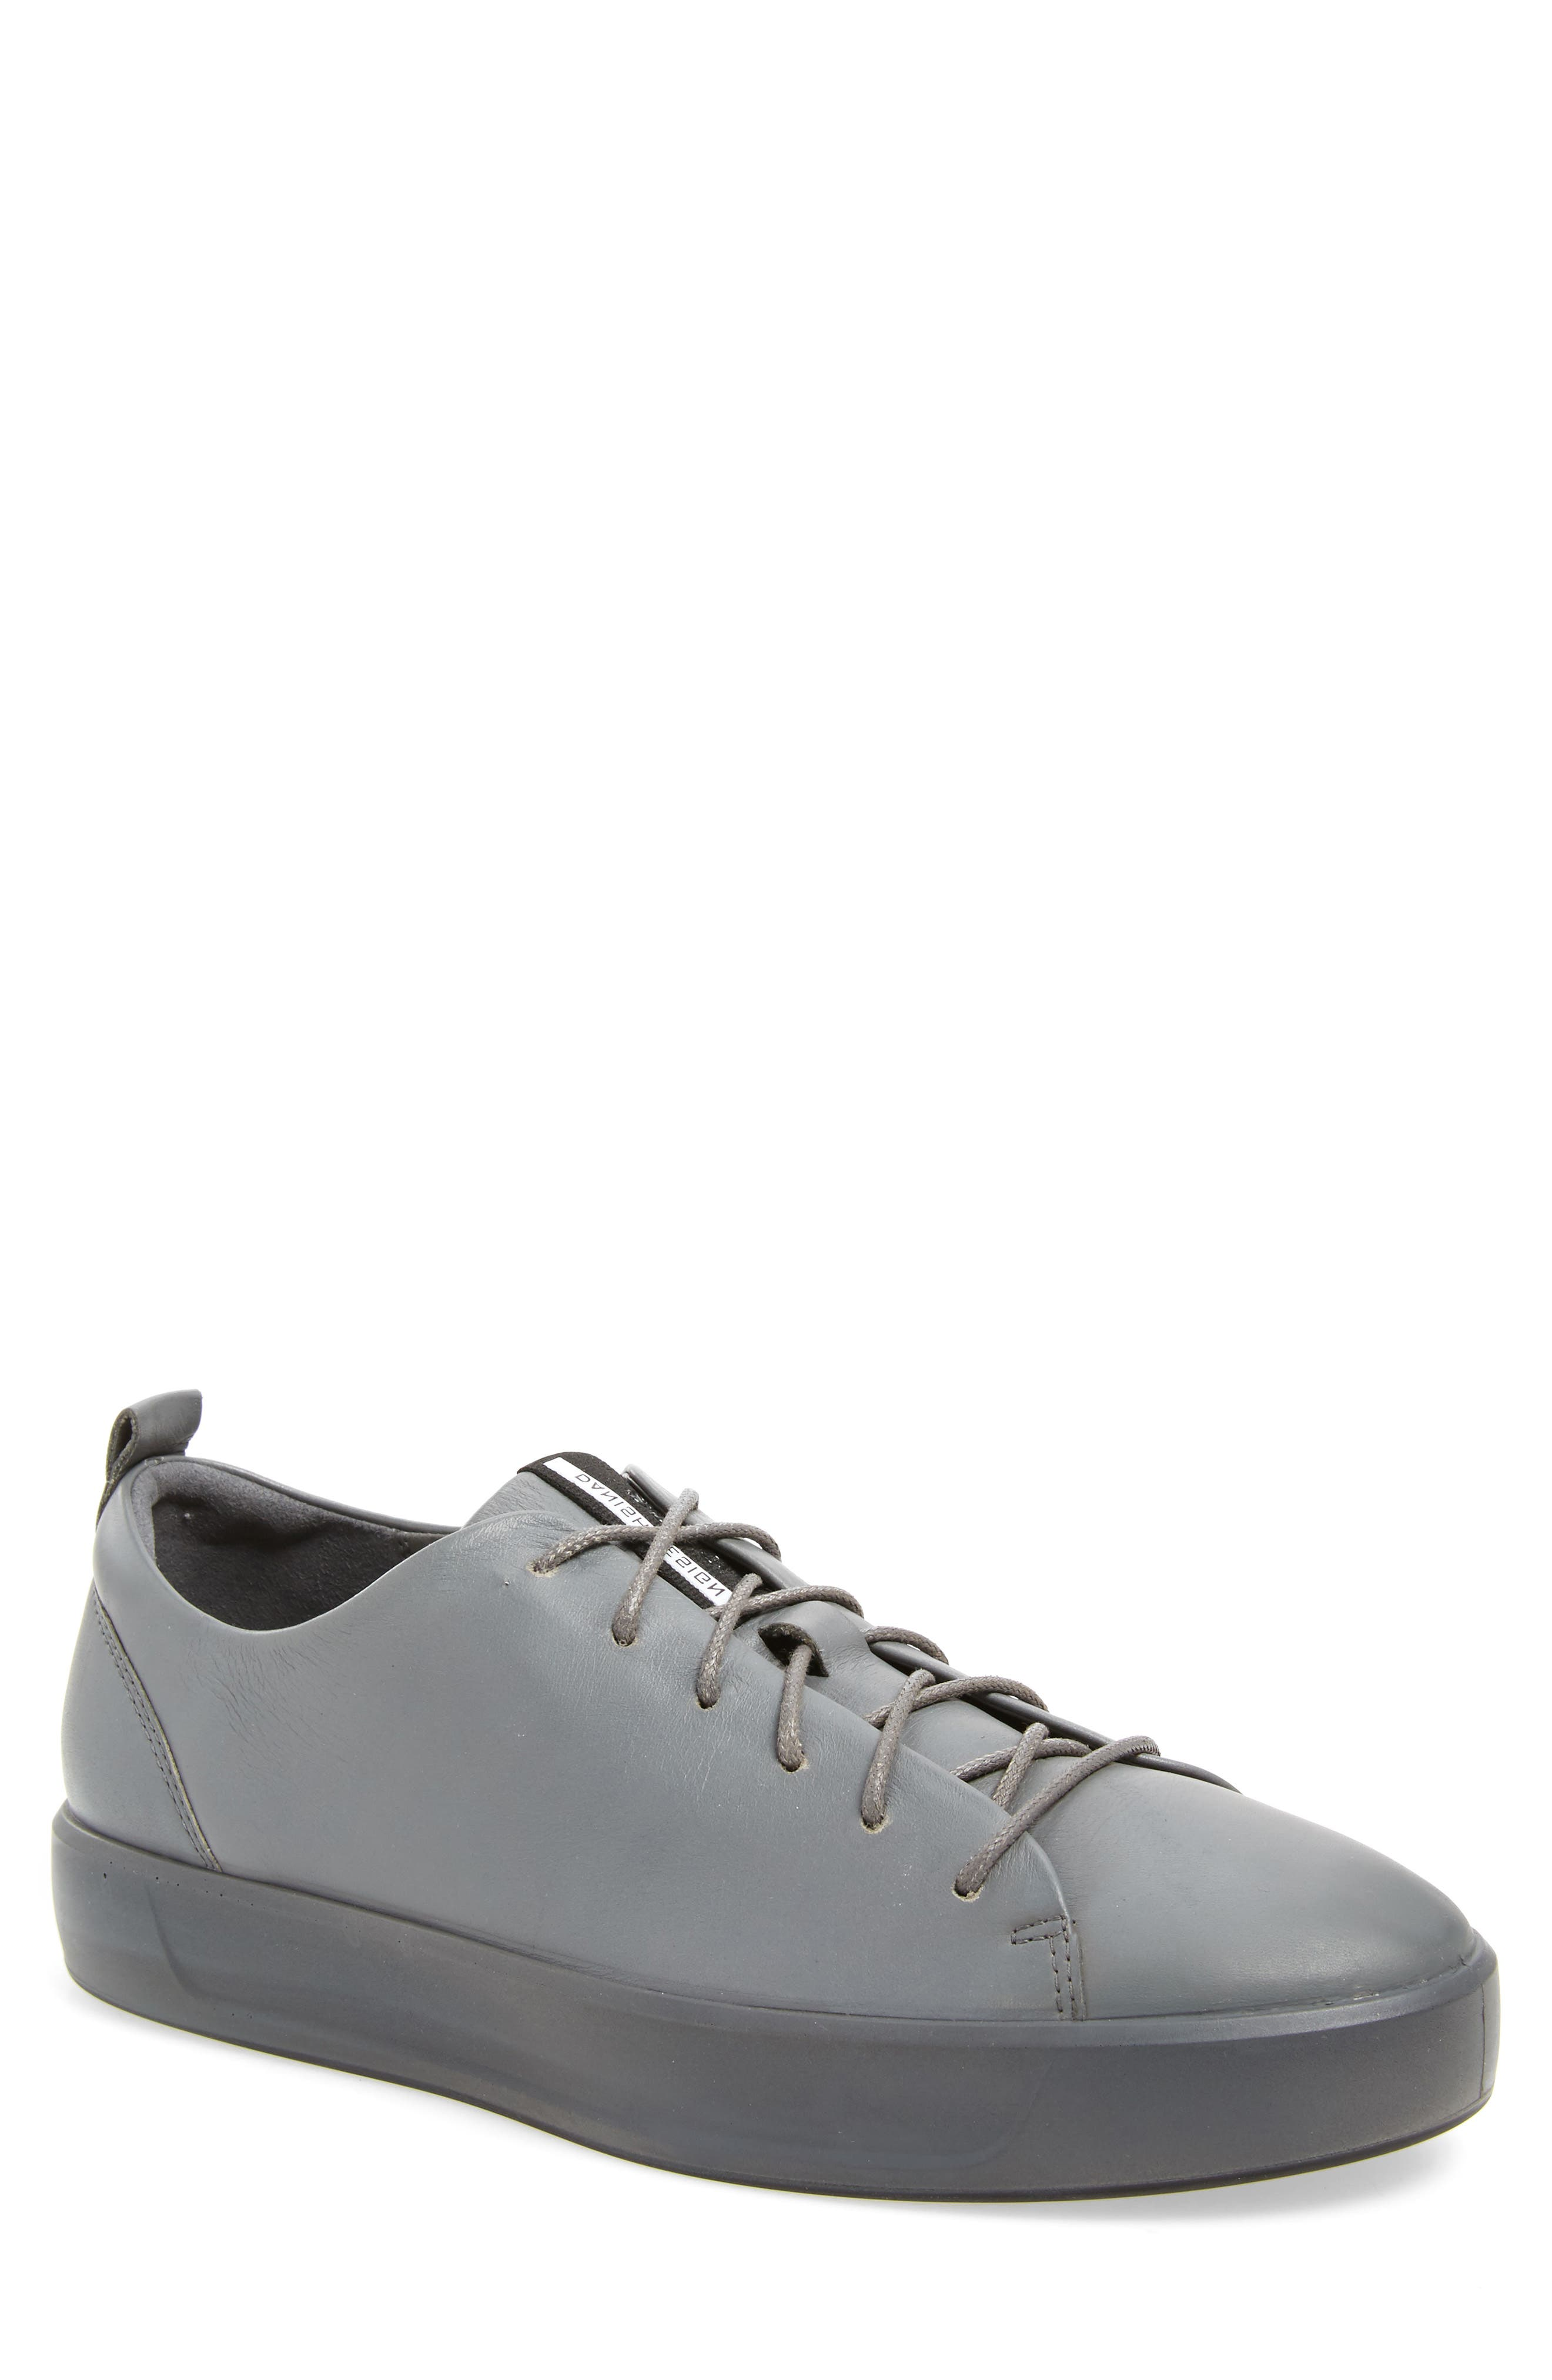 Soft 8 Sneaker,                         Main,                         color, TITANIUM LEATHER